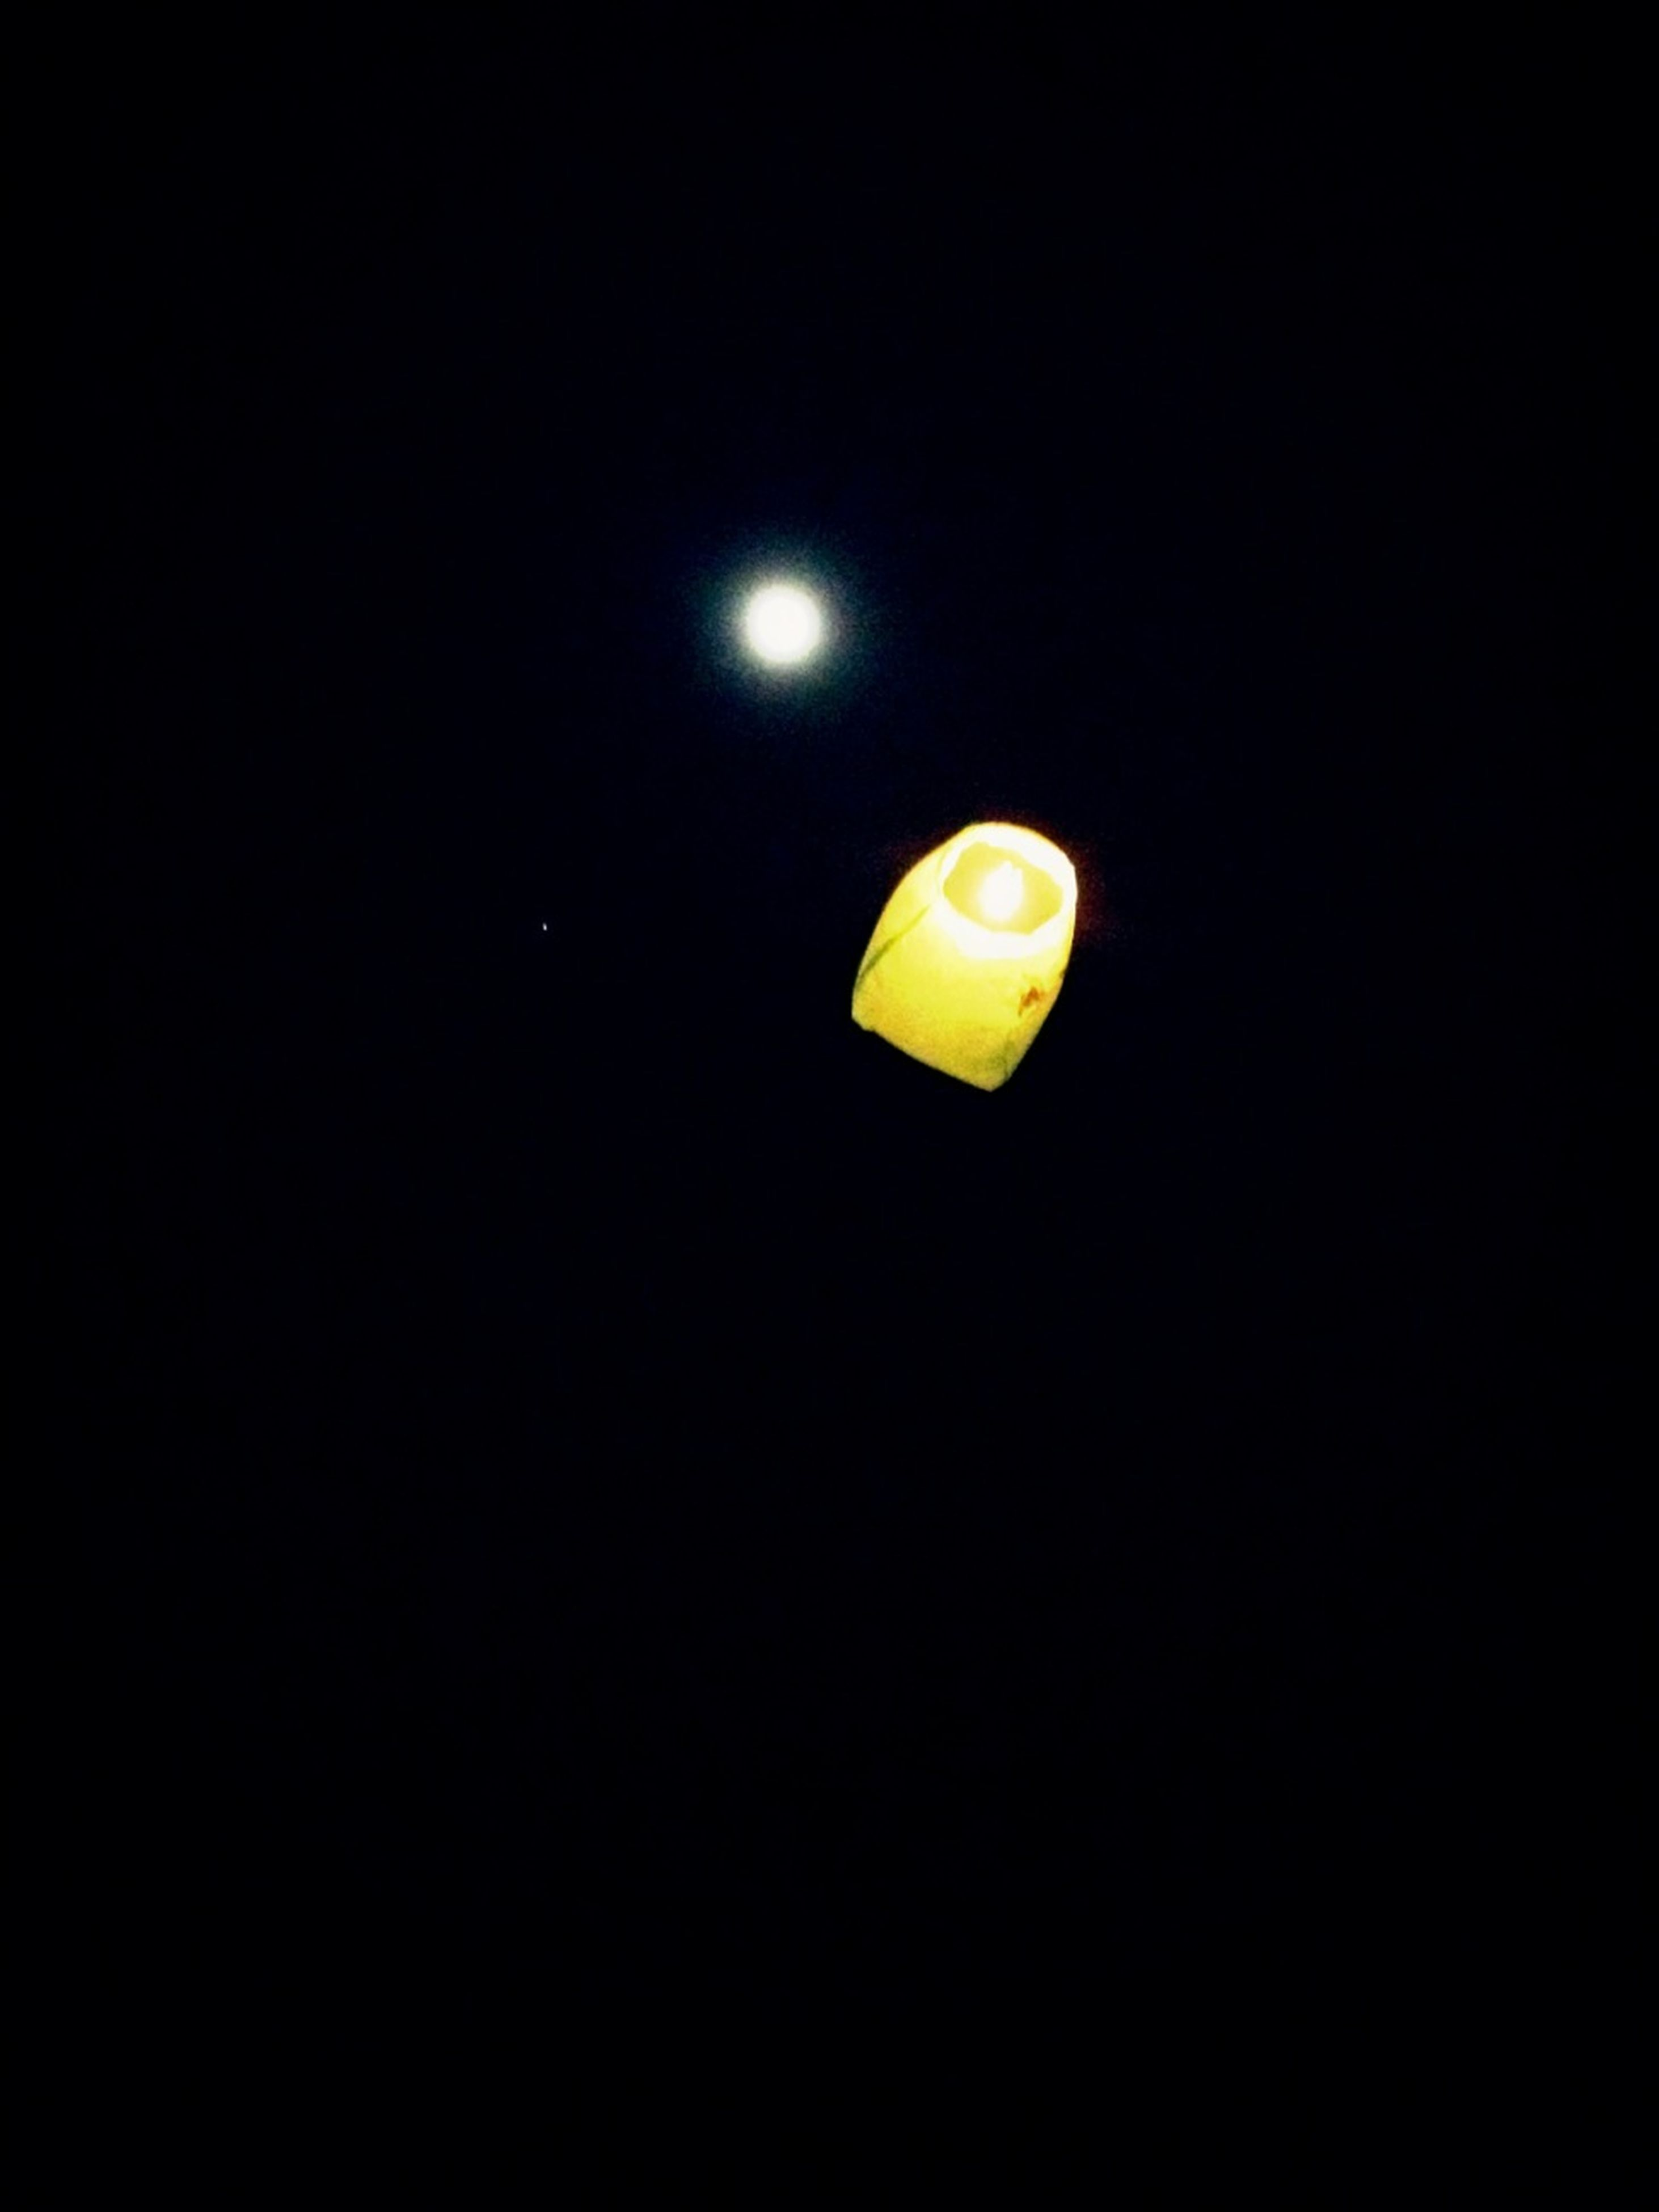 night, copy space, yellow, illuminated, low angle view, moon, lighting equipment, clear sky, street light, sky, no people, full moon, mid-air, glowing, light - natural phenomenon, flying, outdoors, dark, electric light, nature